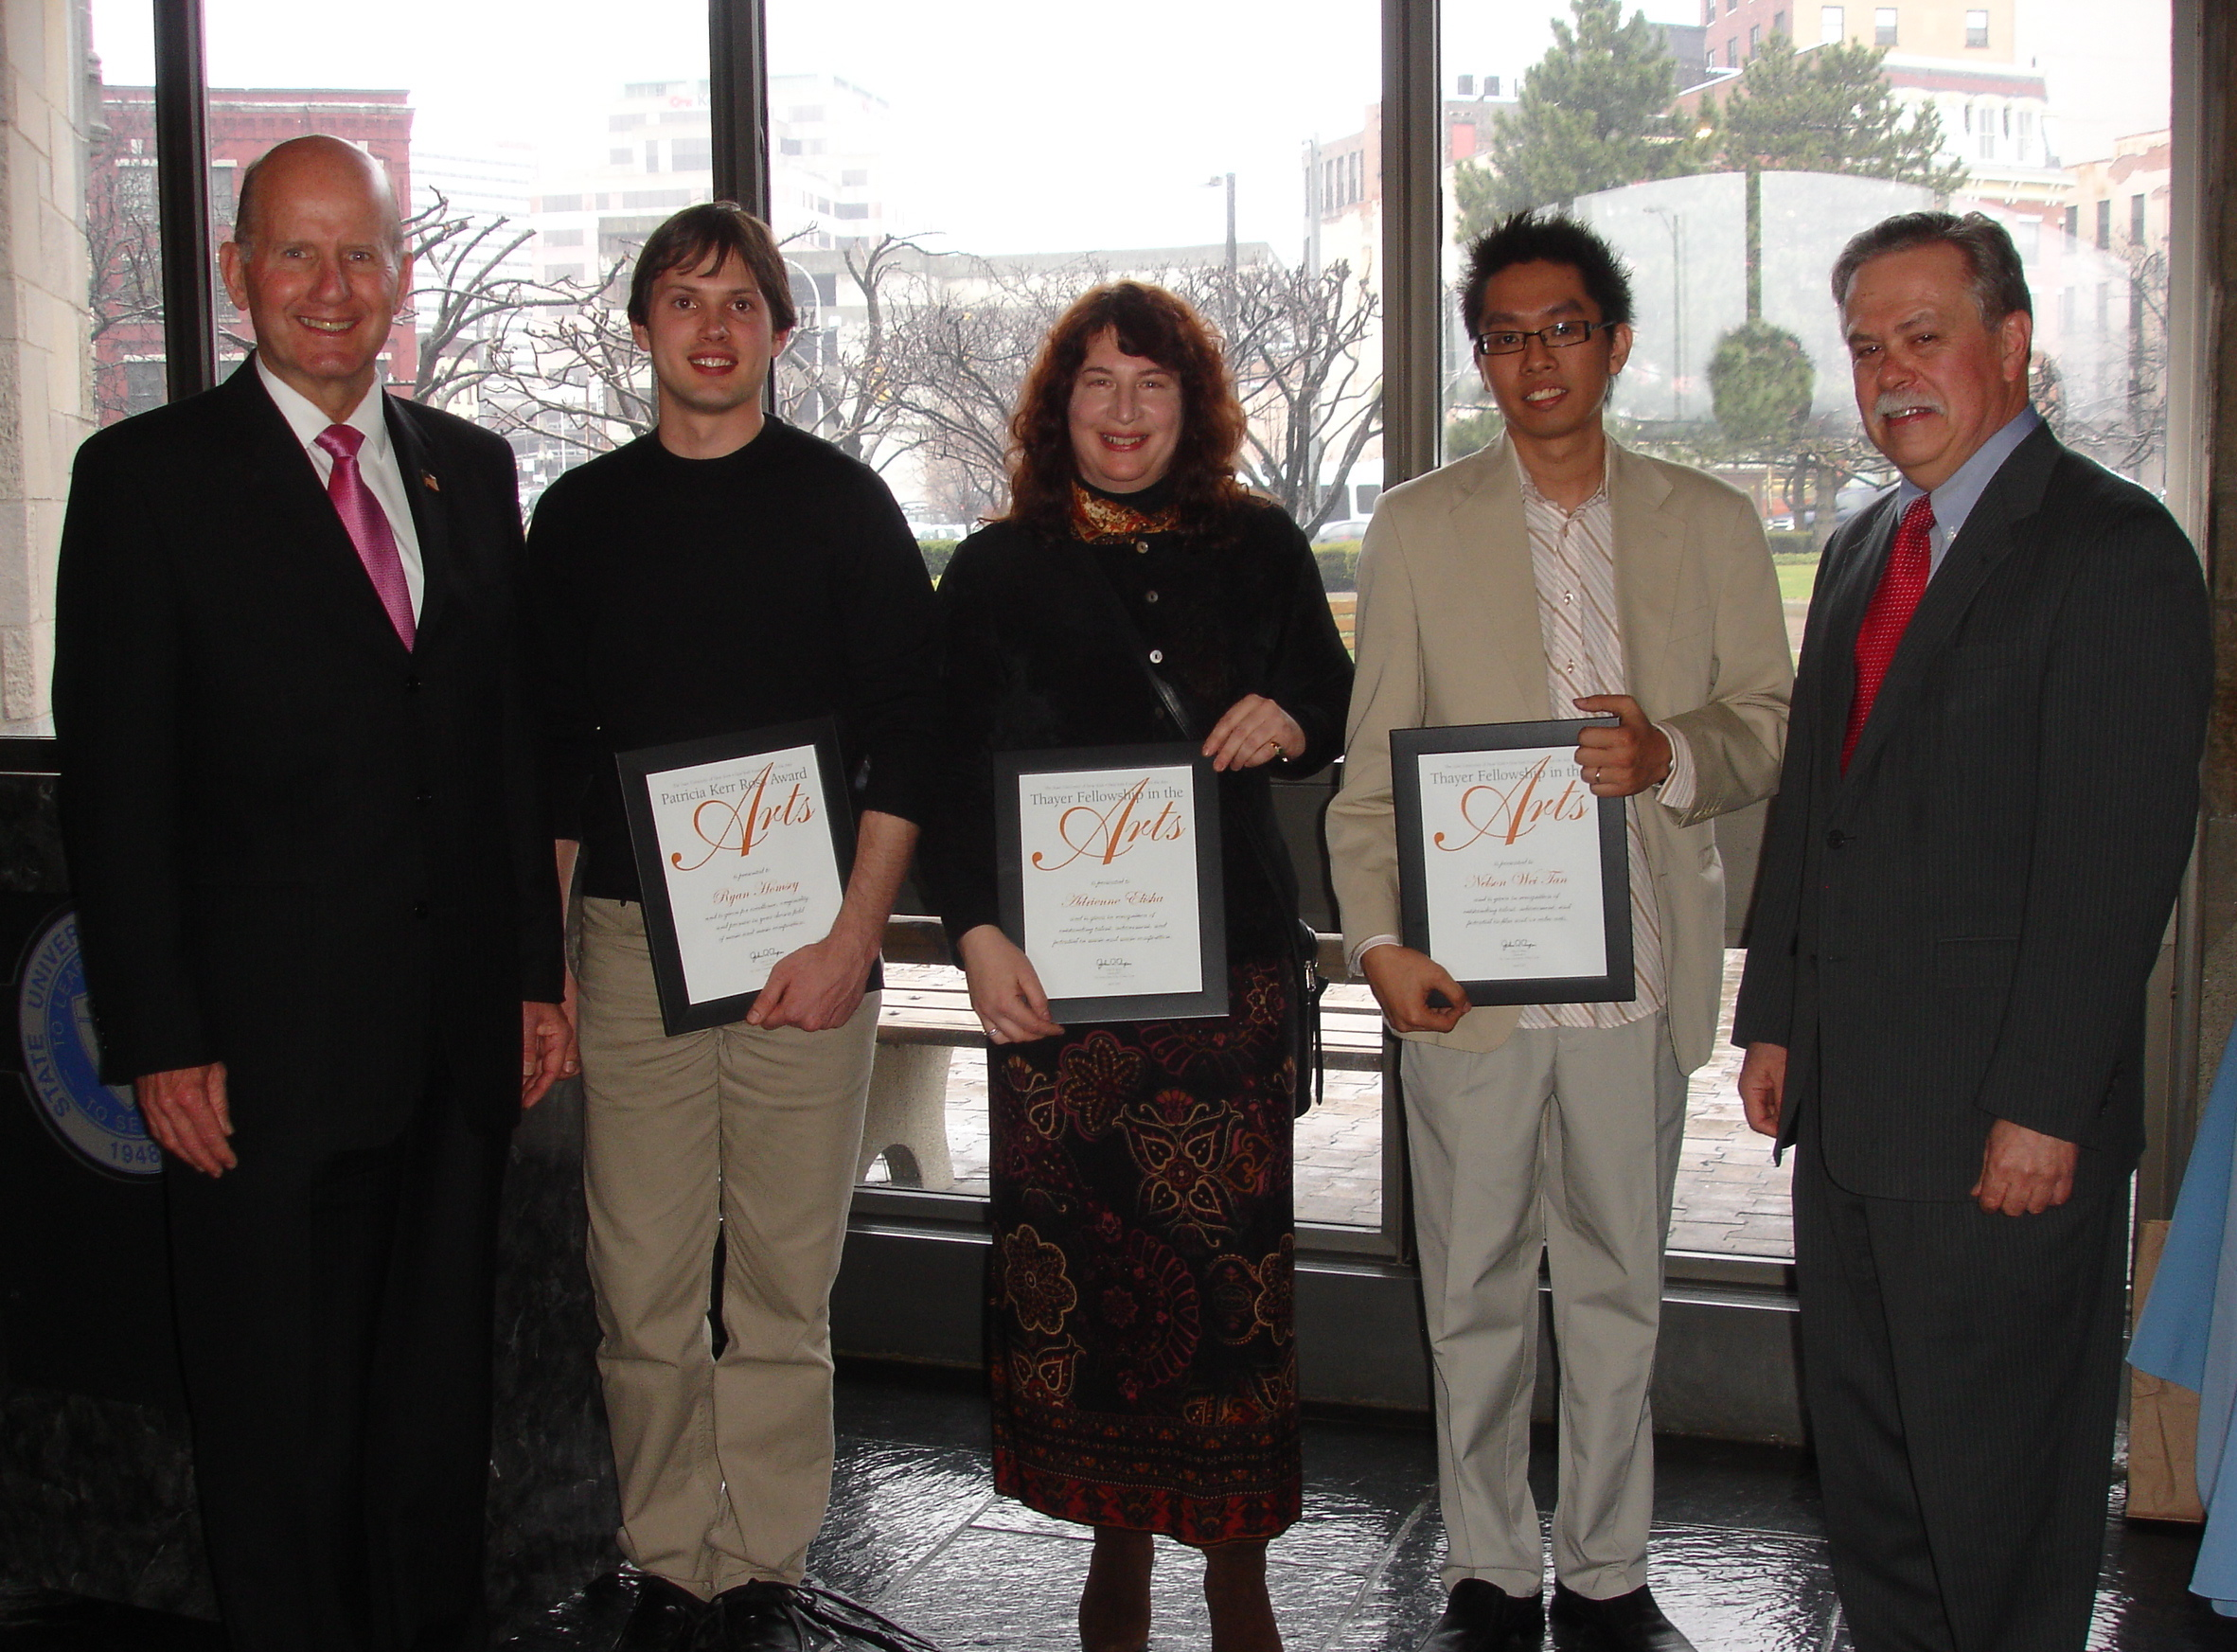 Awardees Ryan Homsey (music), Adrienne Elisha (music), and Nelson Wei Tan (film/video) receiving the Patricia Kerr Ross Award for the Arts from the State University of New York